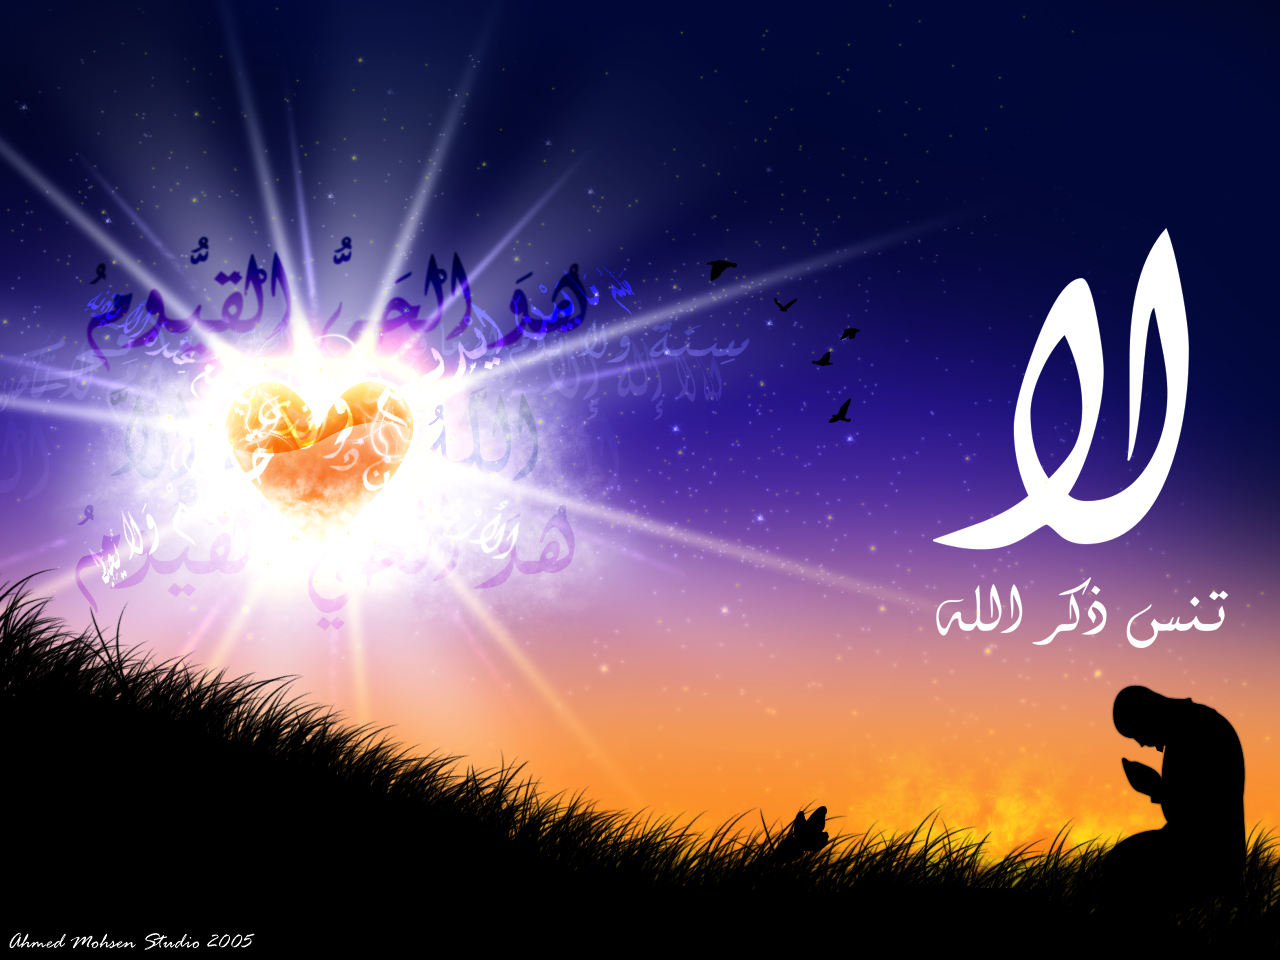 http://4.bp.blogspot.com/-9FshJ2n-hus/TilXSfqyoSI/AAAAAAAAADk/T494VClPOPI/s1600/Do+Not+Forget+Allah+Wallpaper+In+Blue+1280x960.jpg